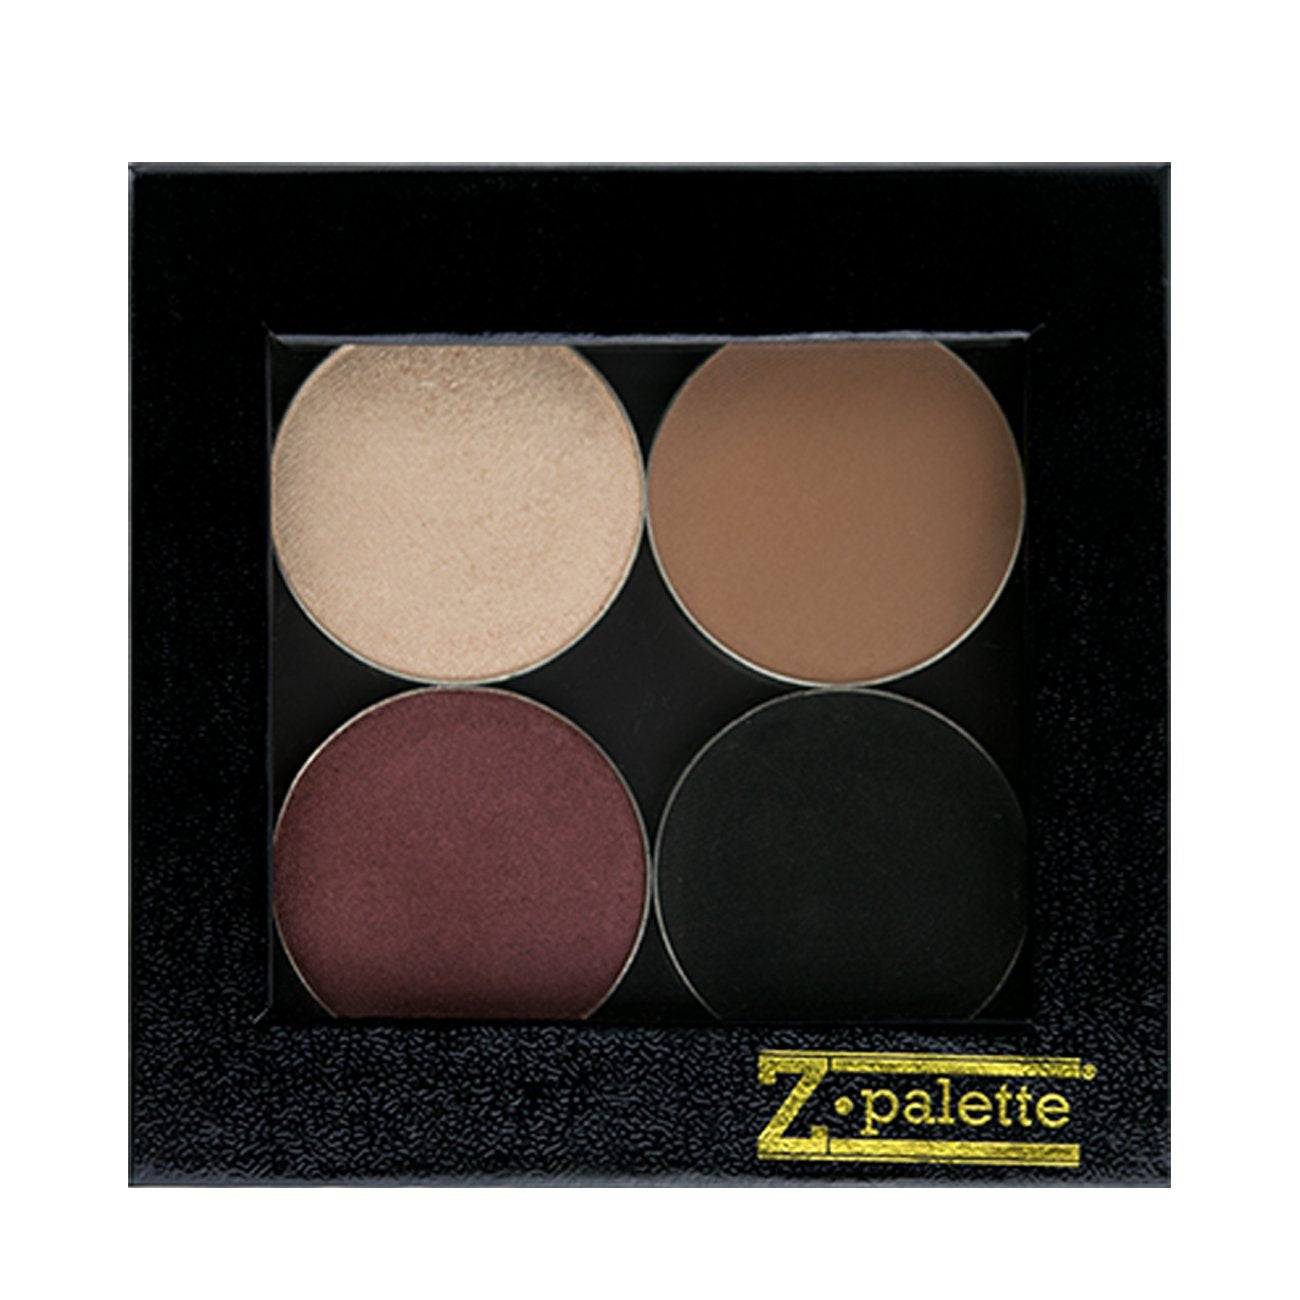 Cheap Eyeshadow Singles with Small Black Z Palette